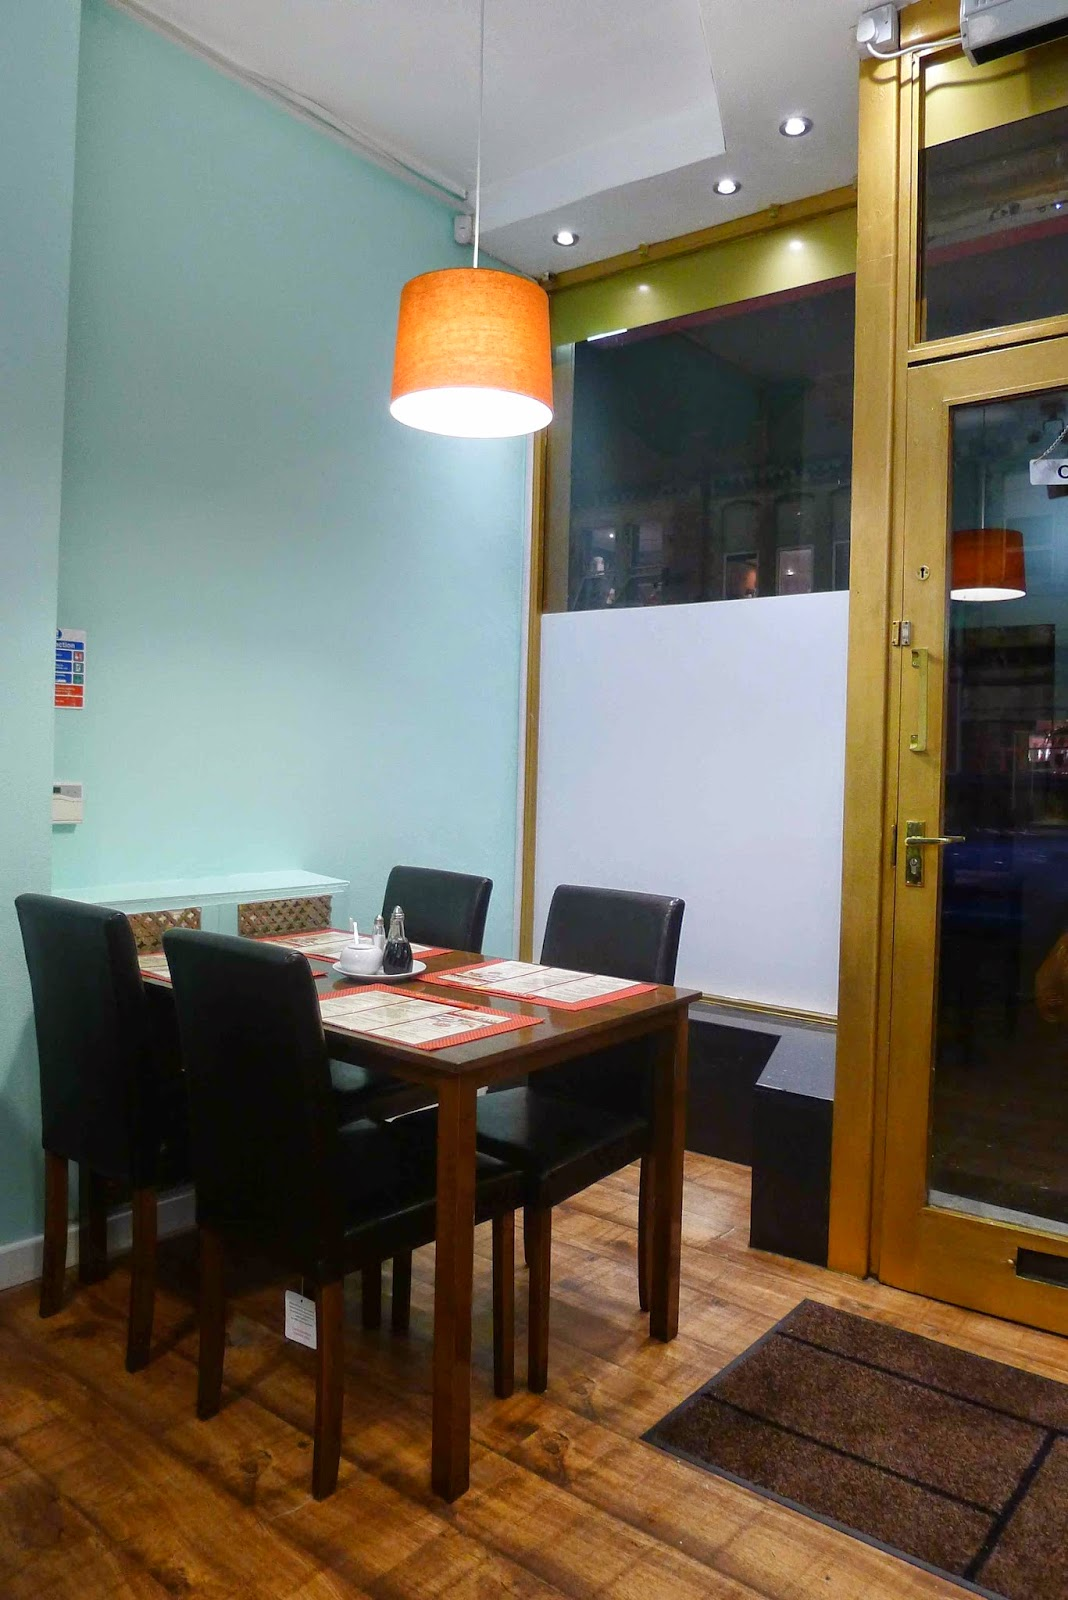 GourmetGorro: Chilli Basil, City Road, Cardiff Thai restaurant review